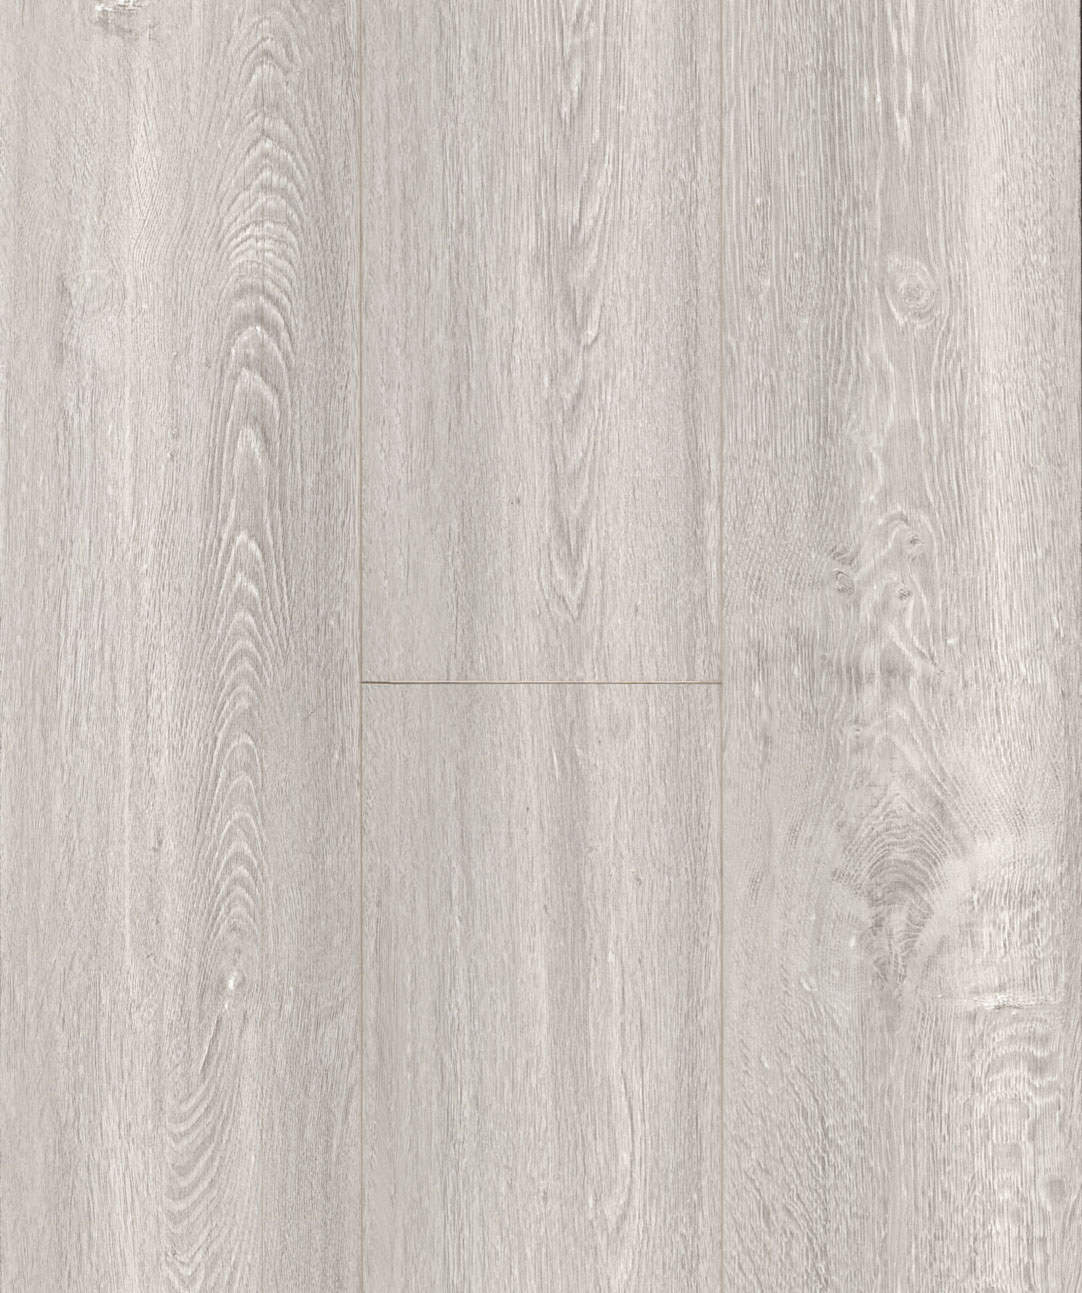 Silver Oak Laminate Flooring